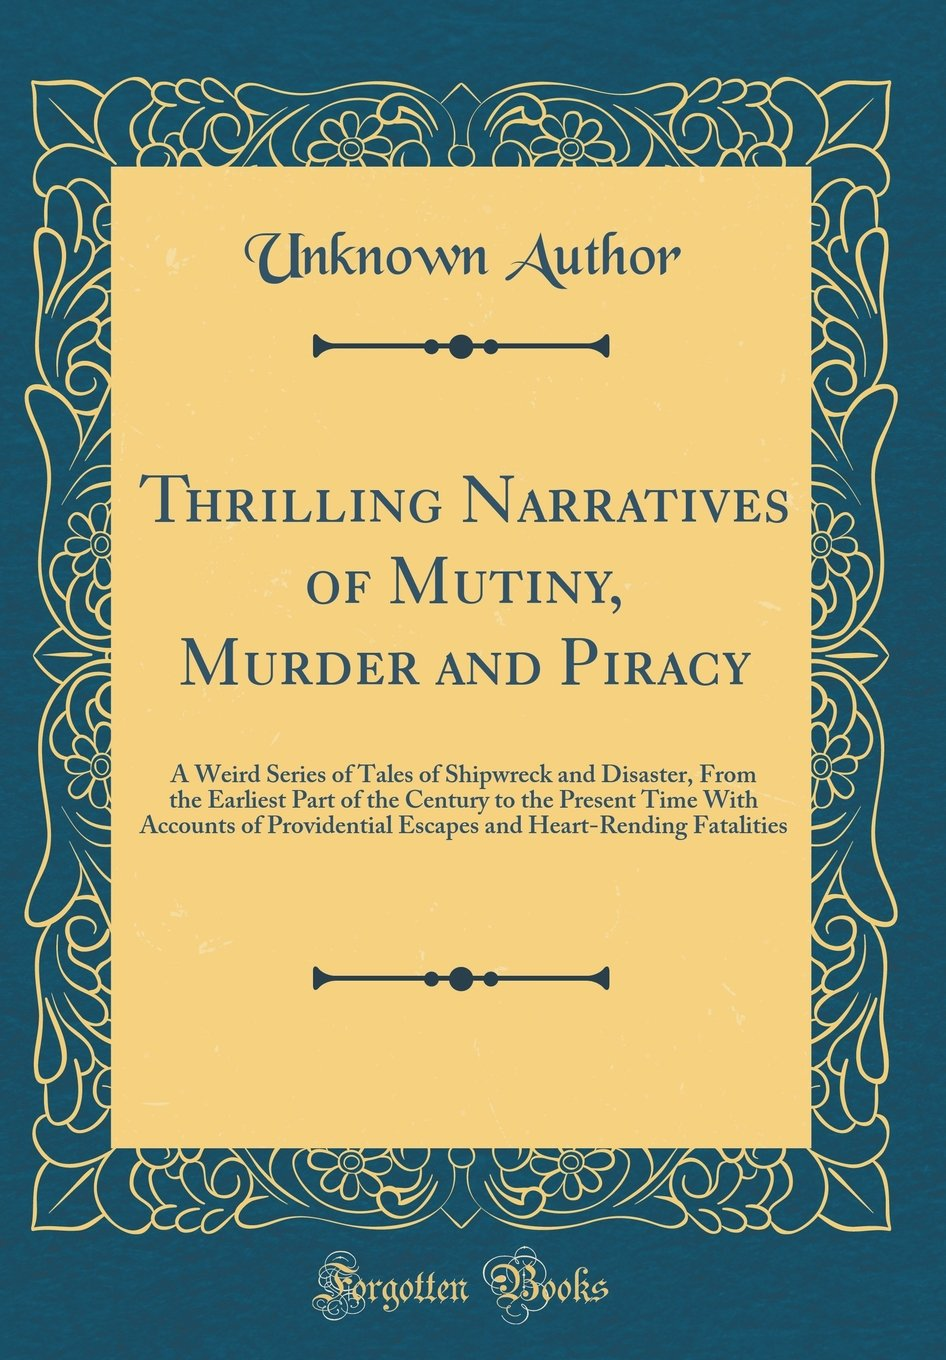 Thrilling Narratives of Mutiny, Murder and Piracy: A Weird Series of Tales of Shipwreck and Disaster, From the Earliest Part of the Century to the ... Heart-Rending Fatalities (Classic Reprint) ebook